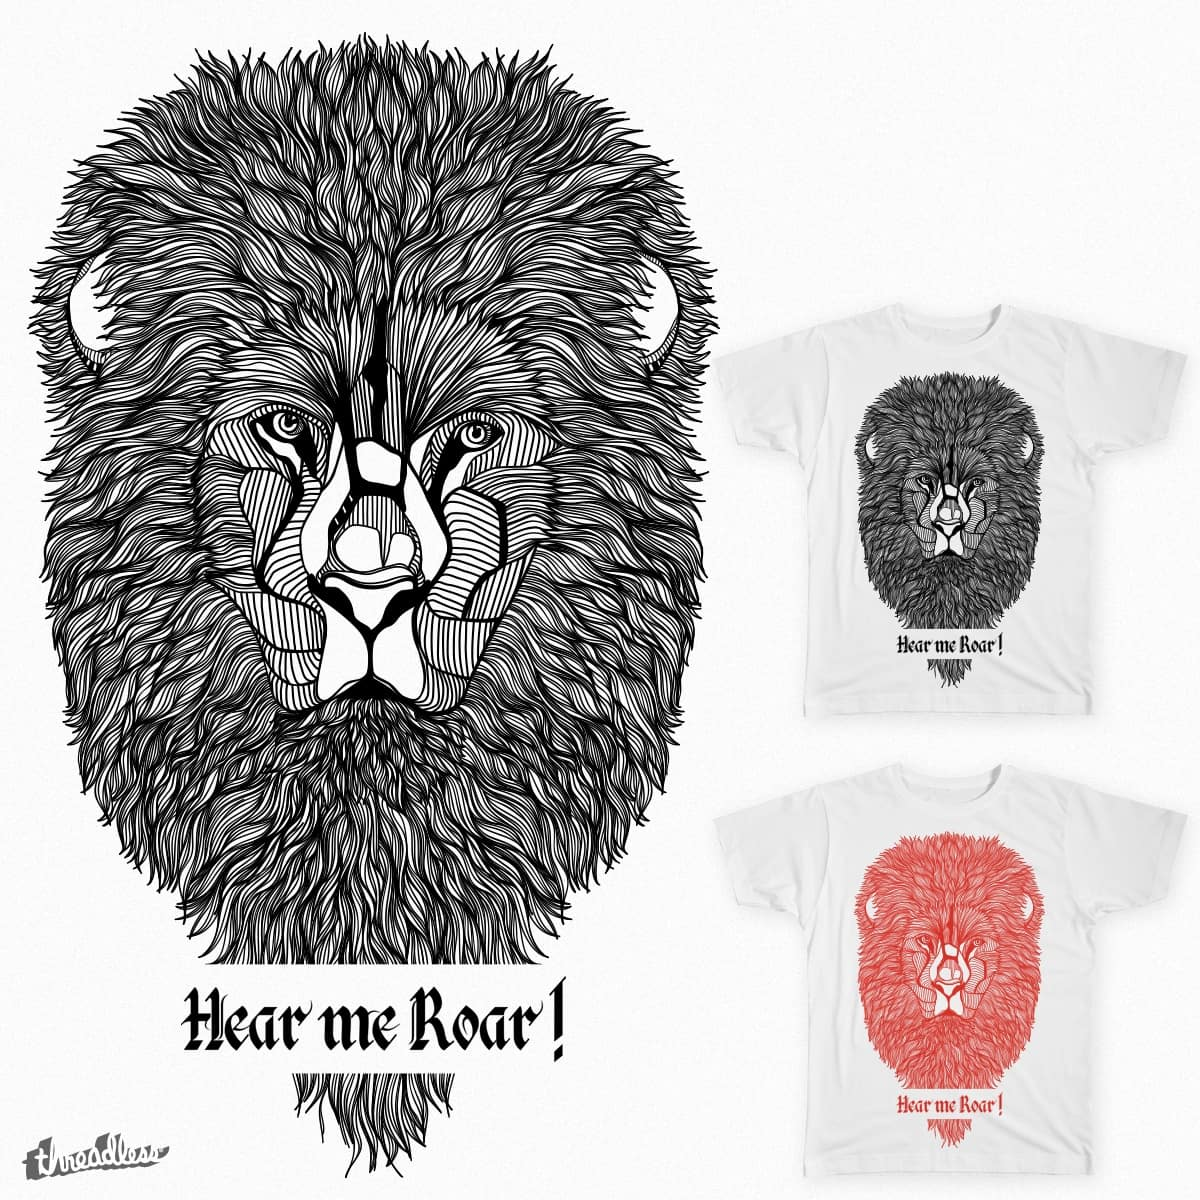 The Lion by topf52 on Threadless